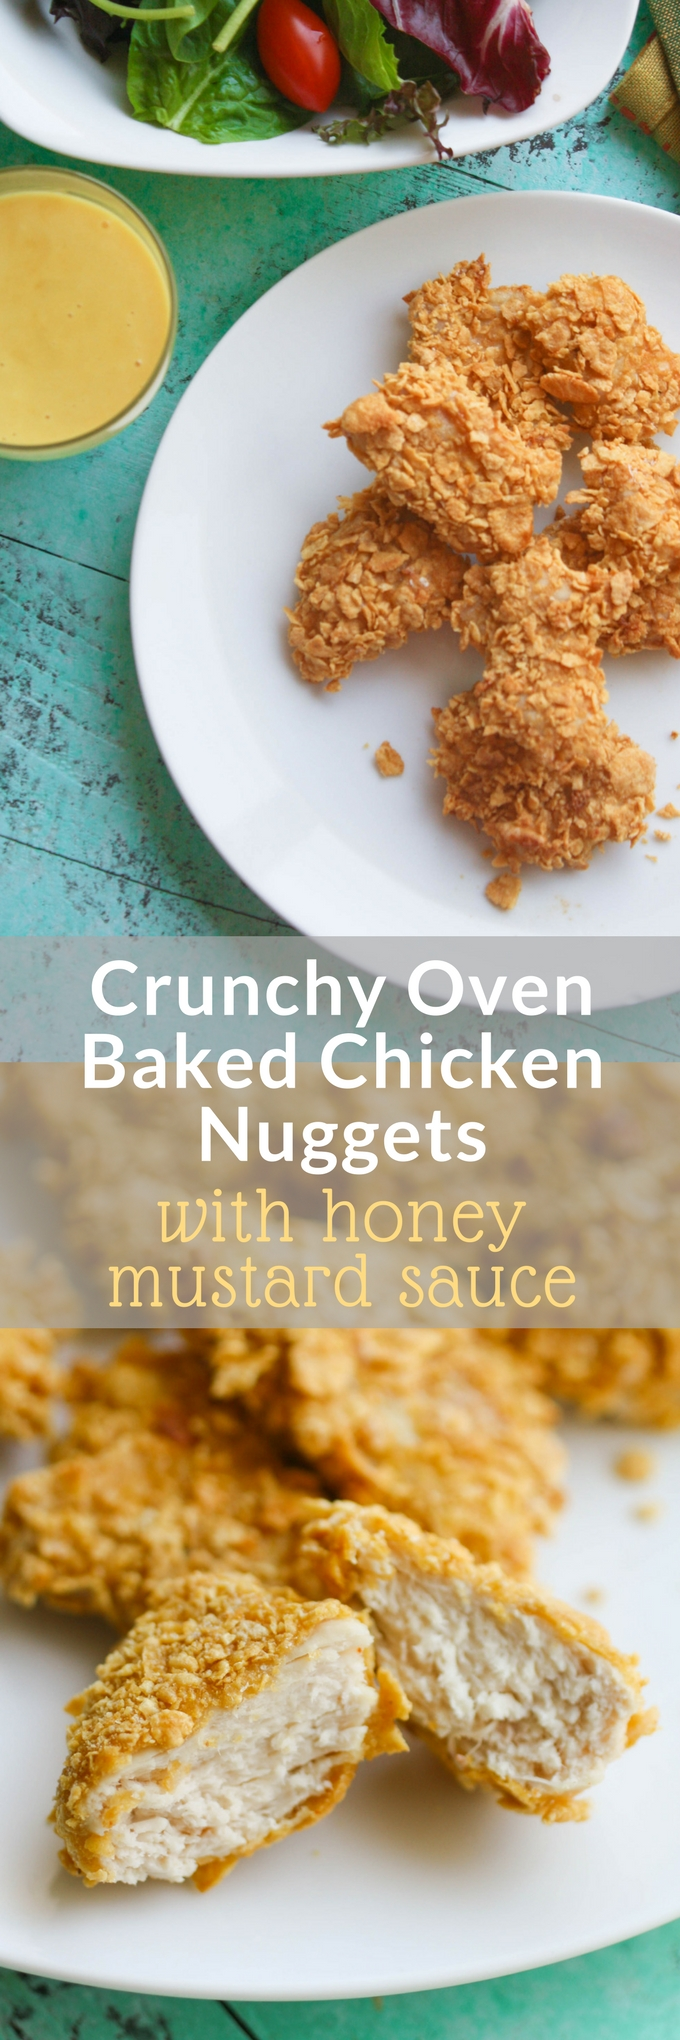 Crunchy Oven Baked Chicken Nuggets With Honey Mustard Sauce Are Easy To Make For Lunch Or